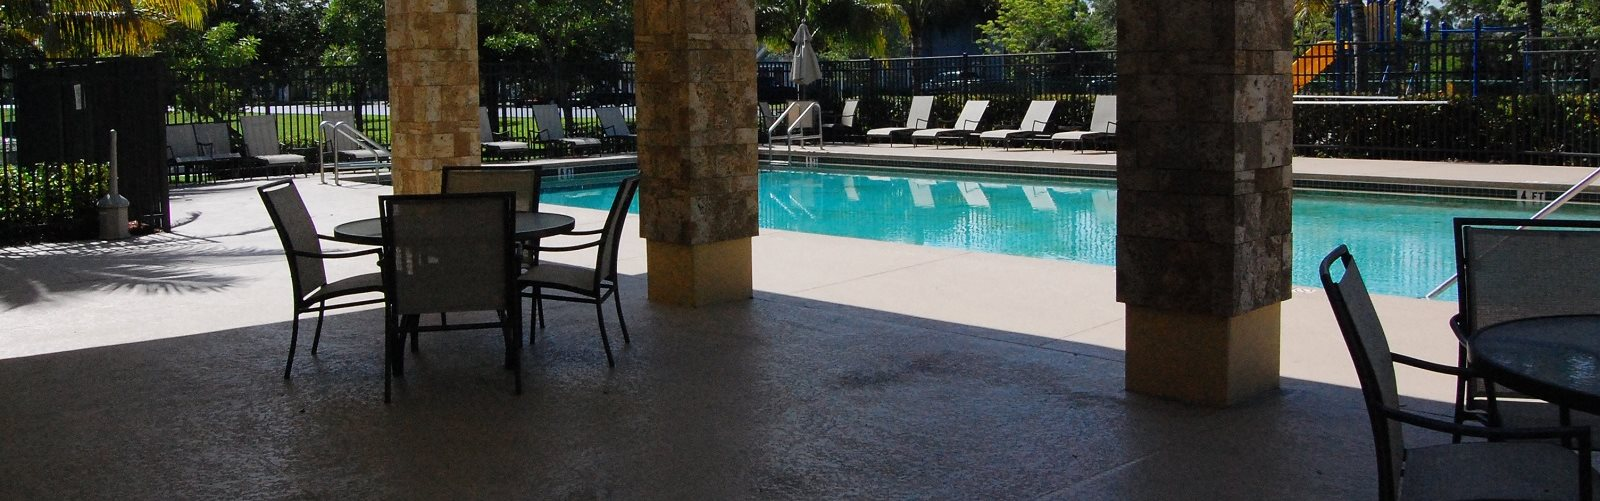 Exterior Pool Lounge Chairs  Sitting Area Naples Florida